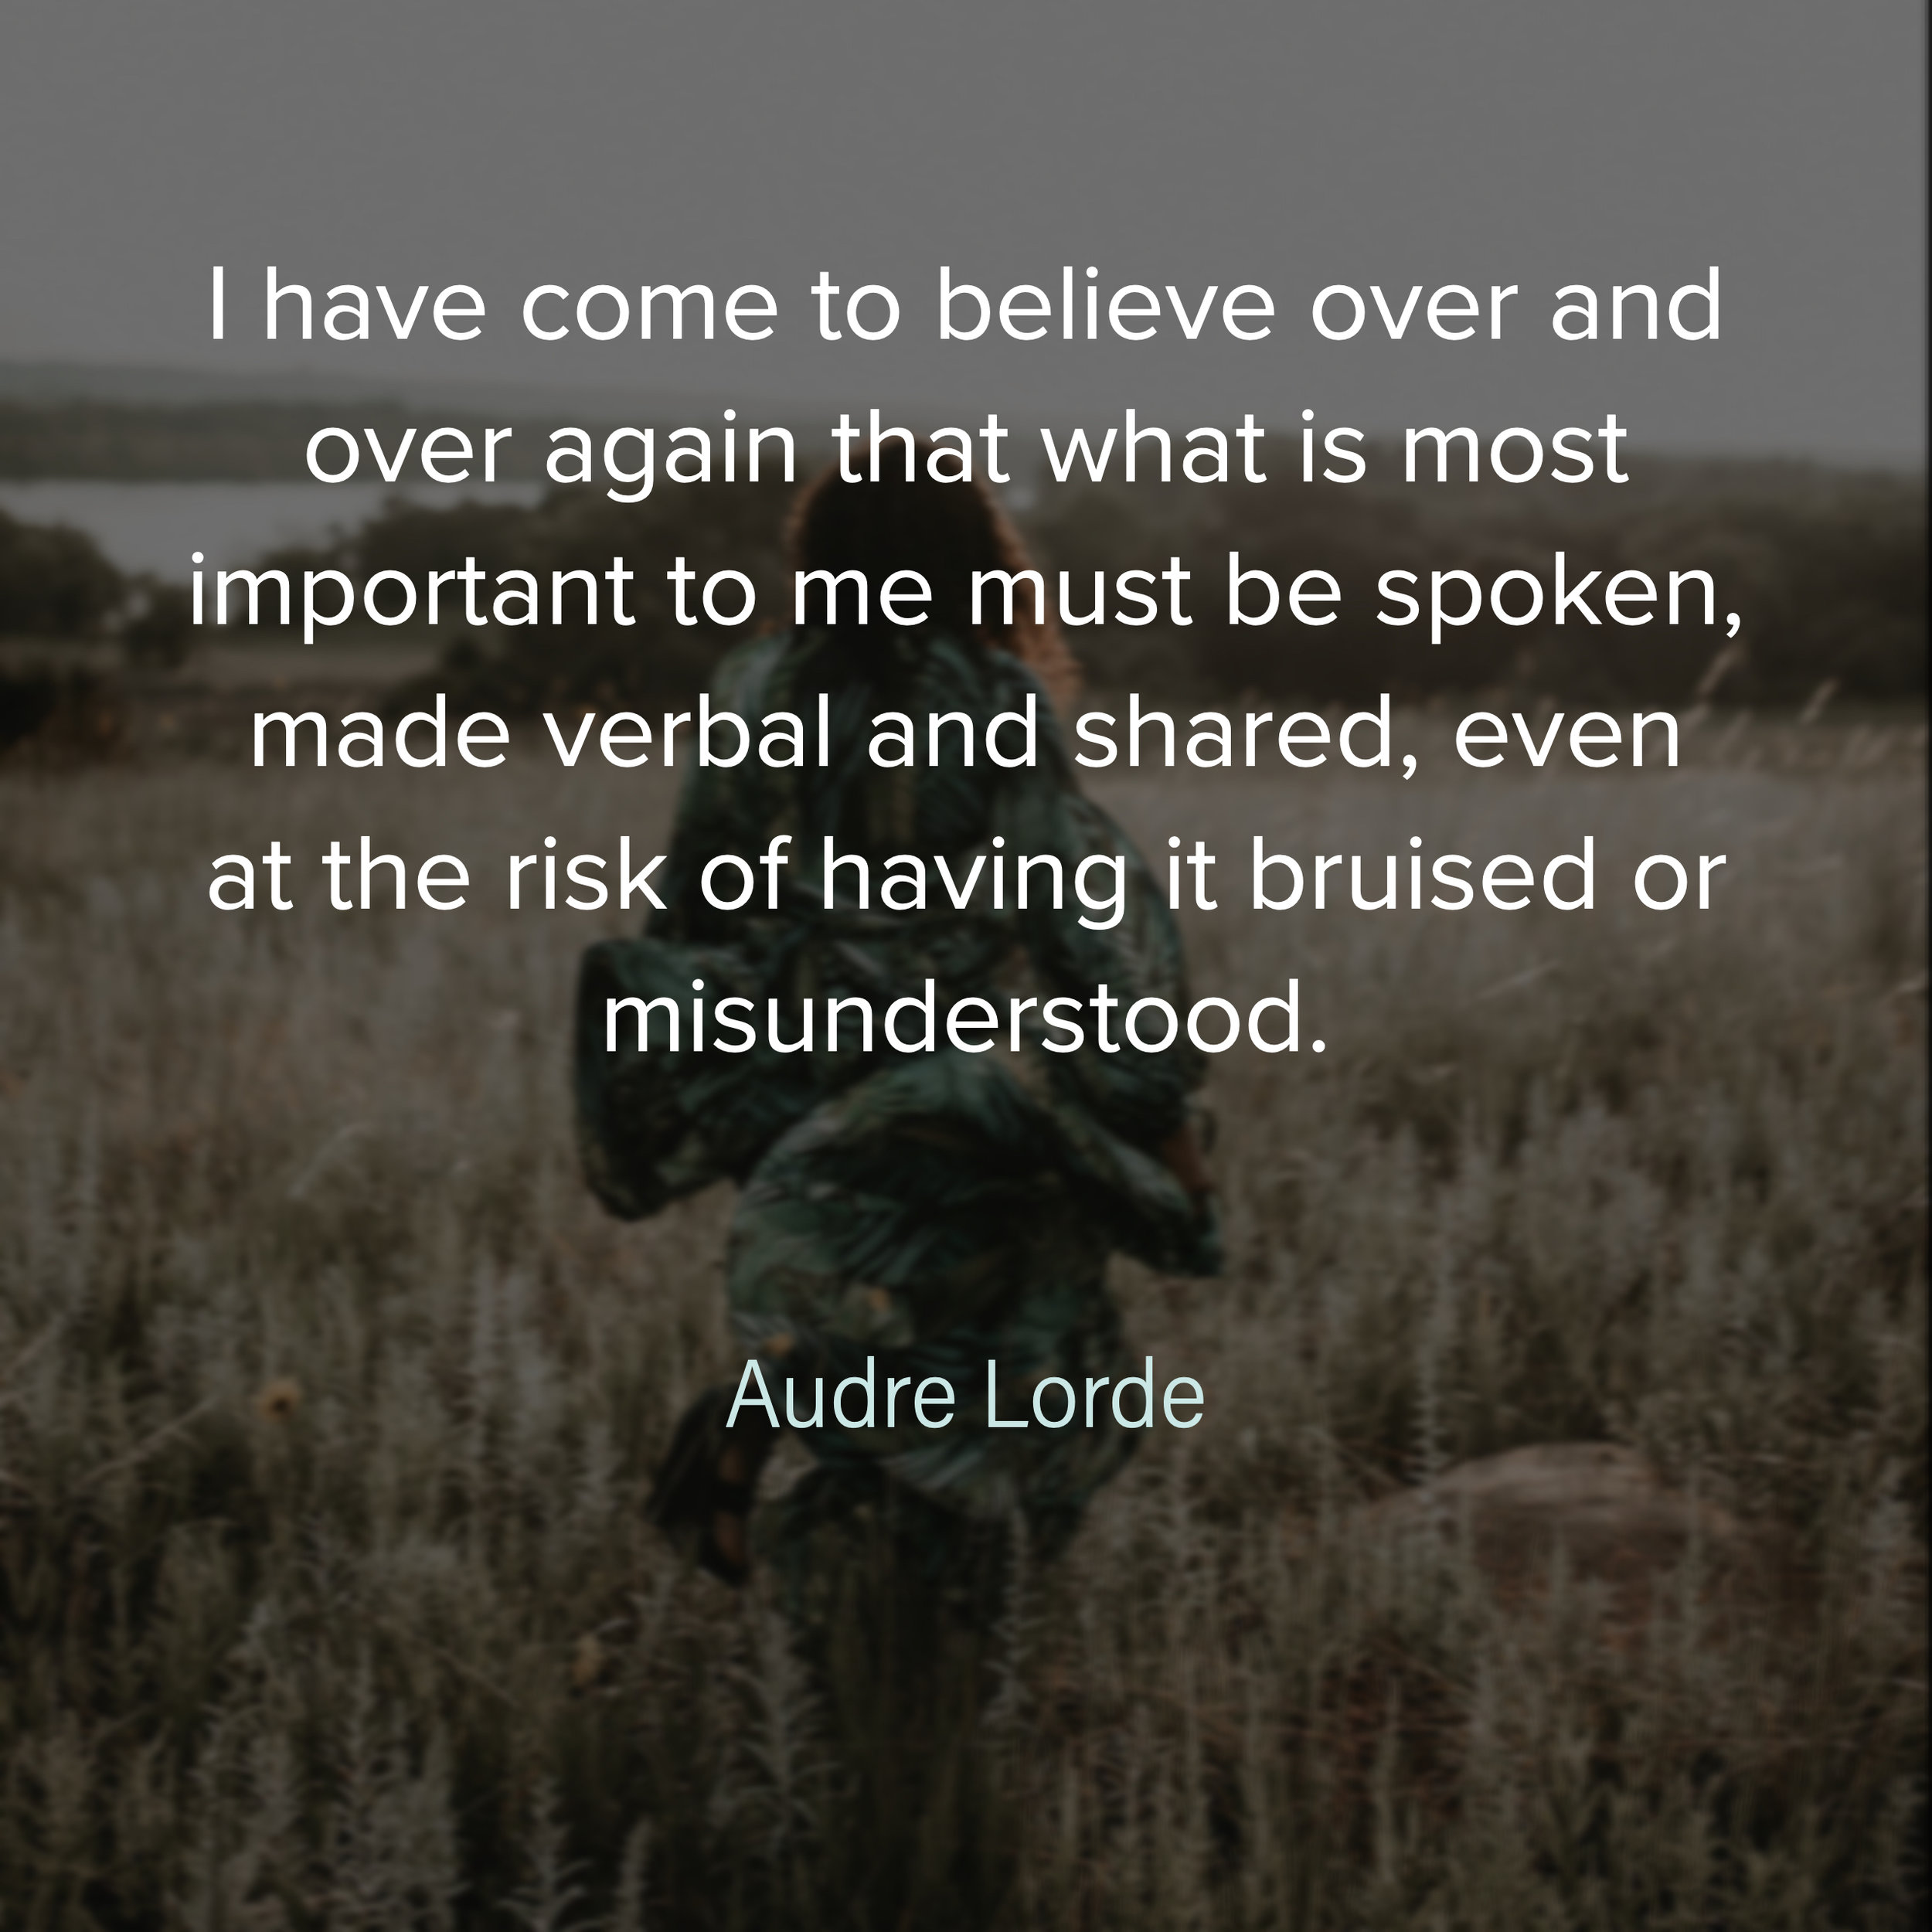 I have come to believe over and over again that what is most important to me must be spoken, made verbal and shared, even at the risk of having it bruised or misunderstood. Audre Lorde